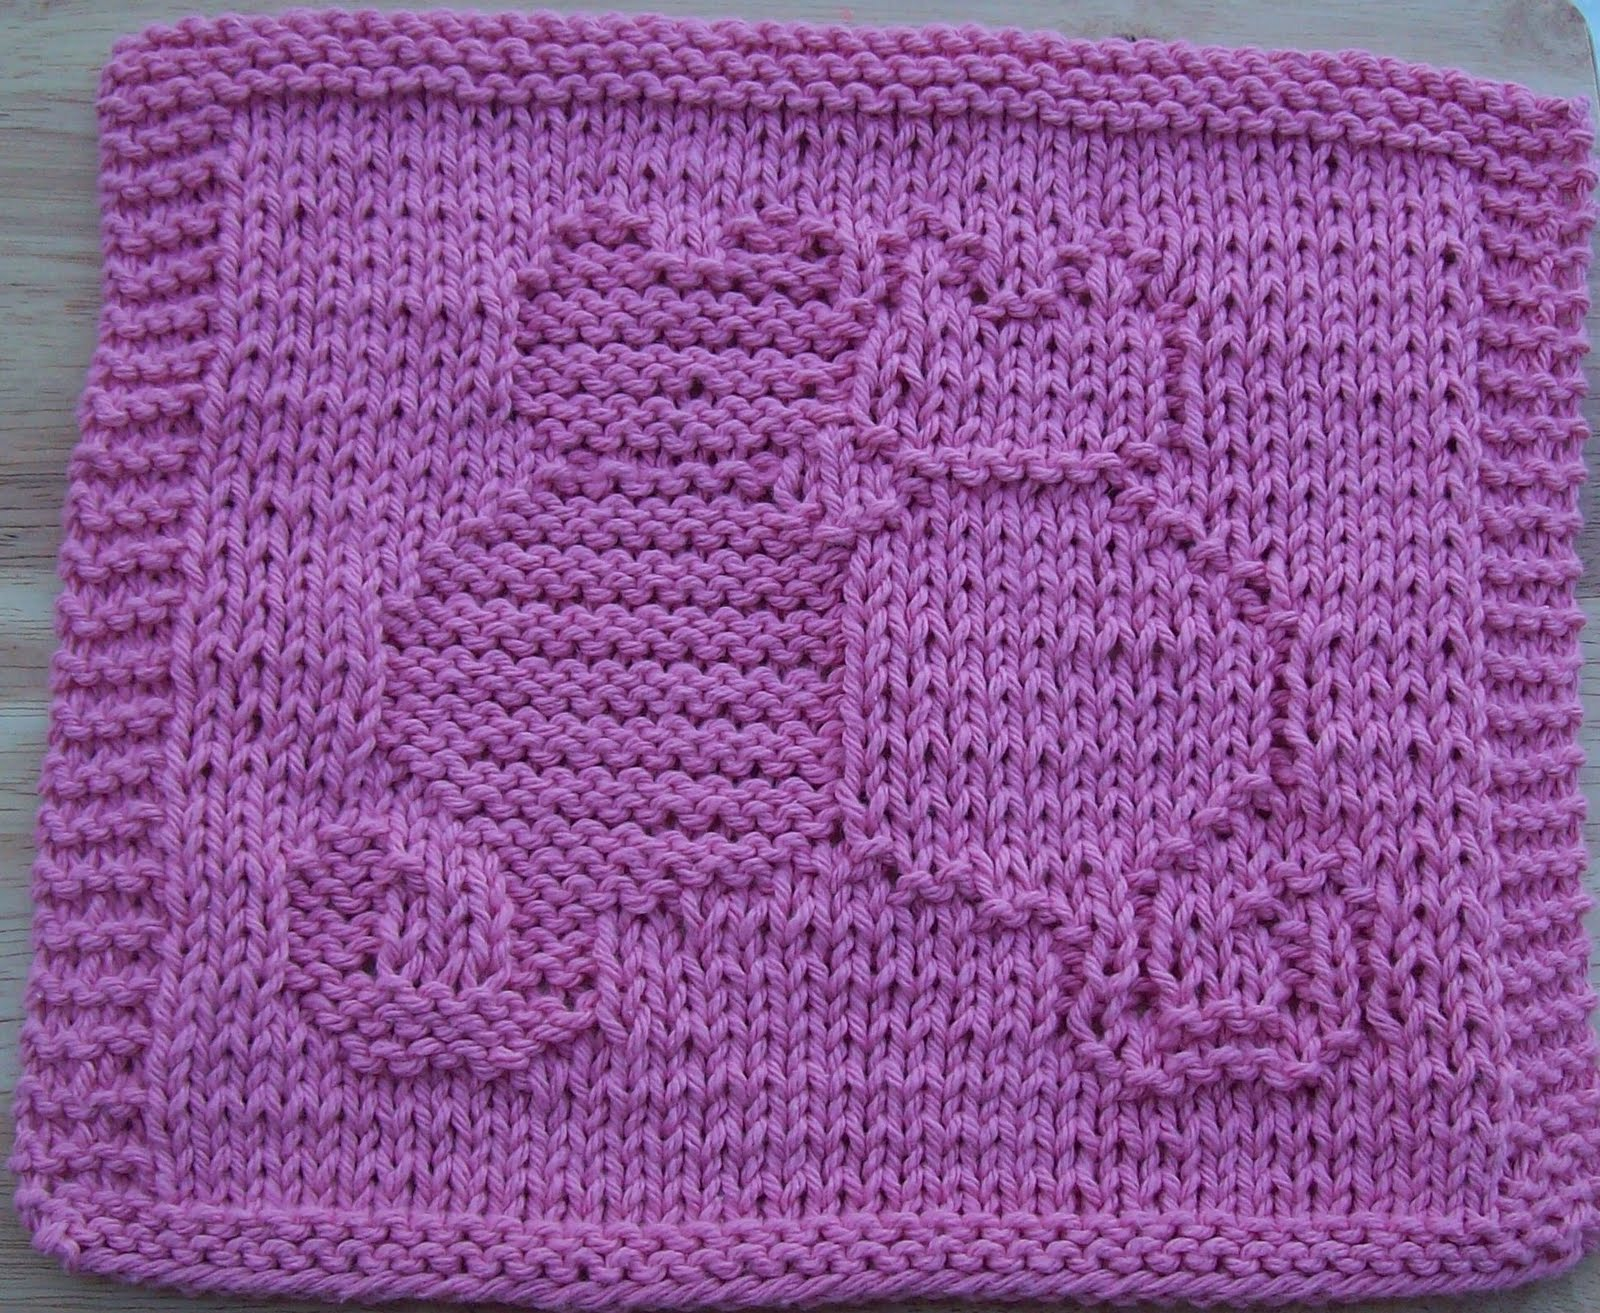 Free Knitting Patterns Dishcloths Alphabet : DigKnitty Designs: Snuggling Cats Knit Dishcloth Pattern